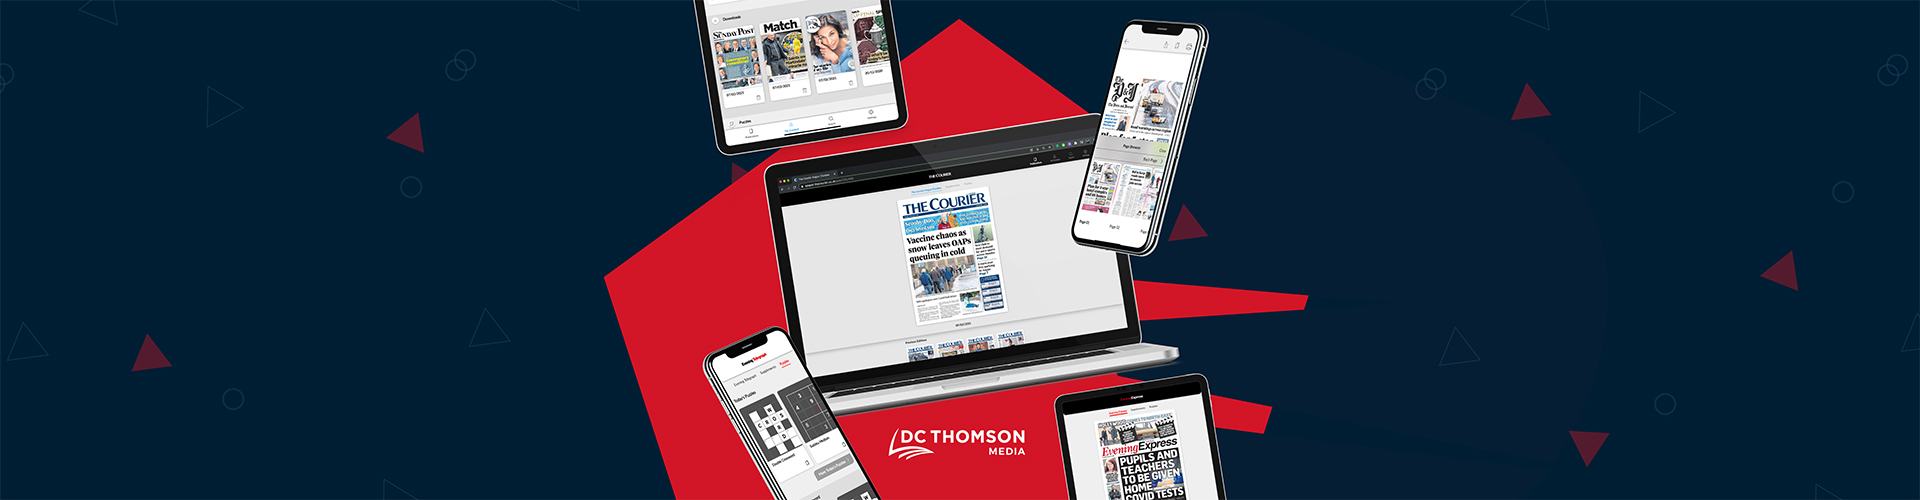 Press Release: DC Thomson Media Upgrade to PageSuite's Latest Edition Platform